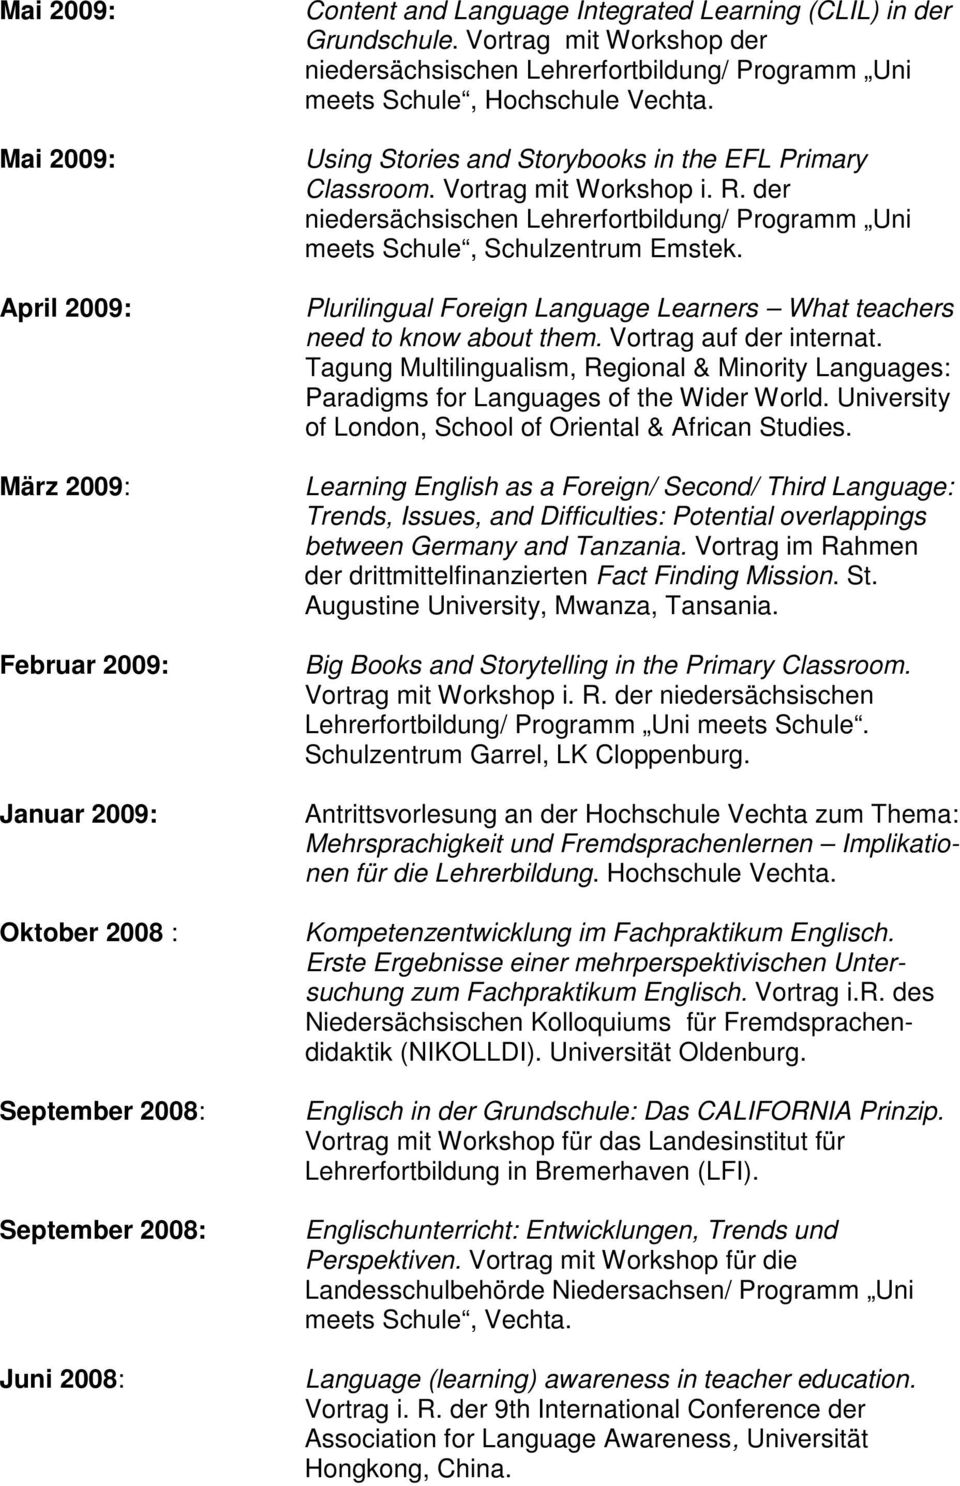 der niedersächsischen Lehrerfortbildung/ Programm Uni meets Schule, Schulzentrum Emstek. Plurilingual Foreign Language Learners What teachers need to know about them. Vortrag auf der internat.